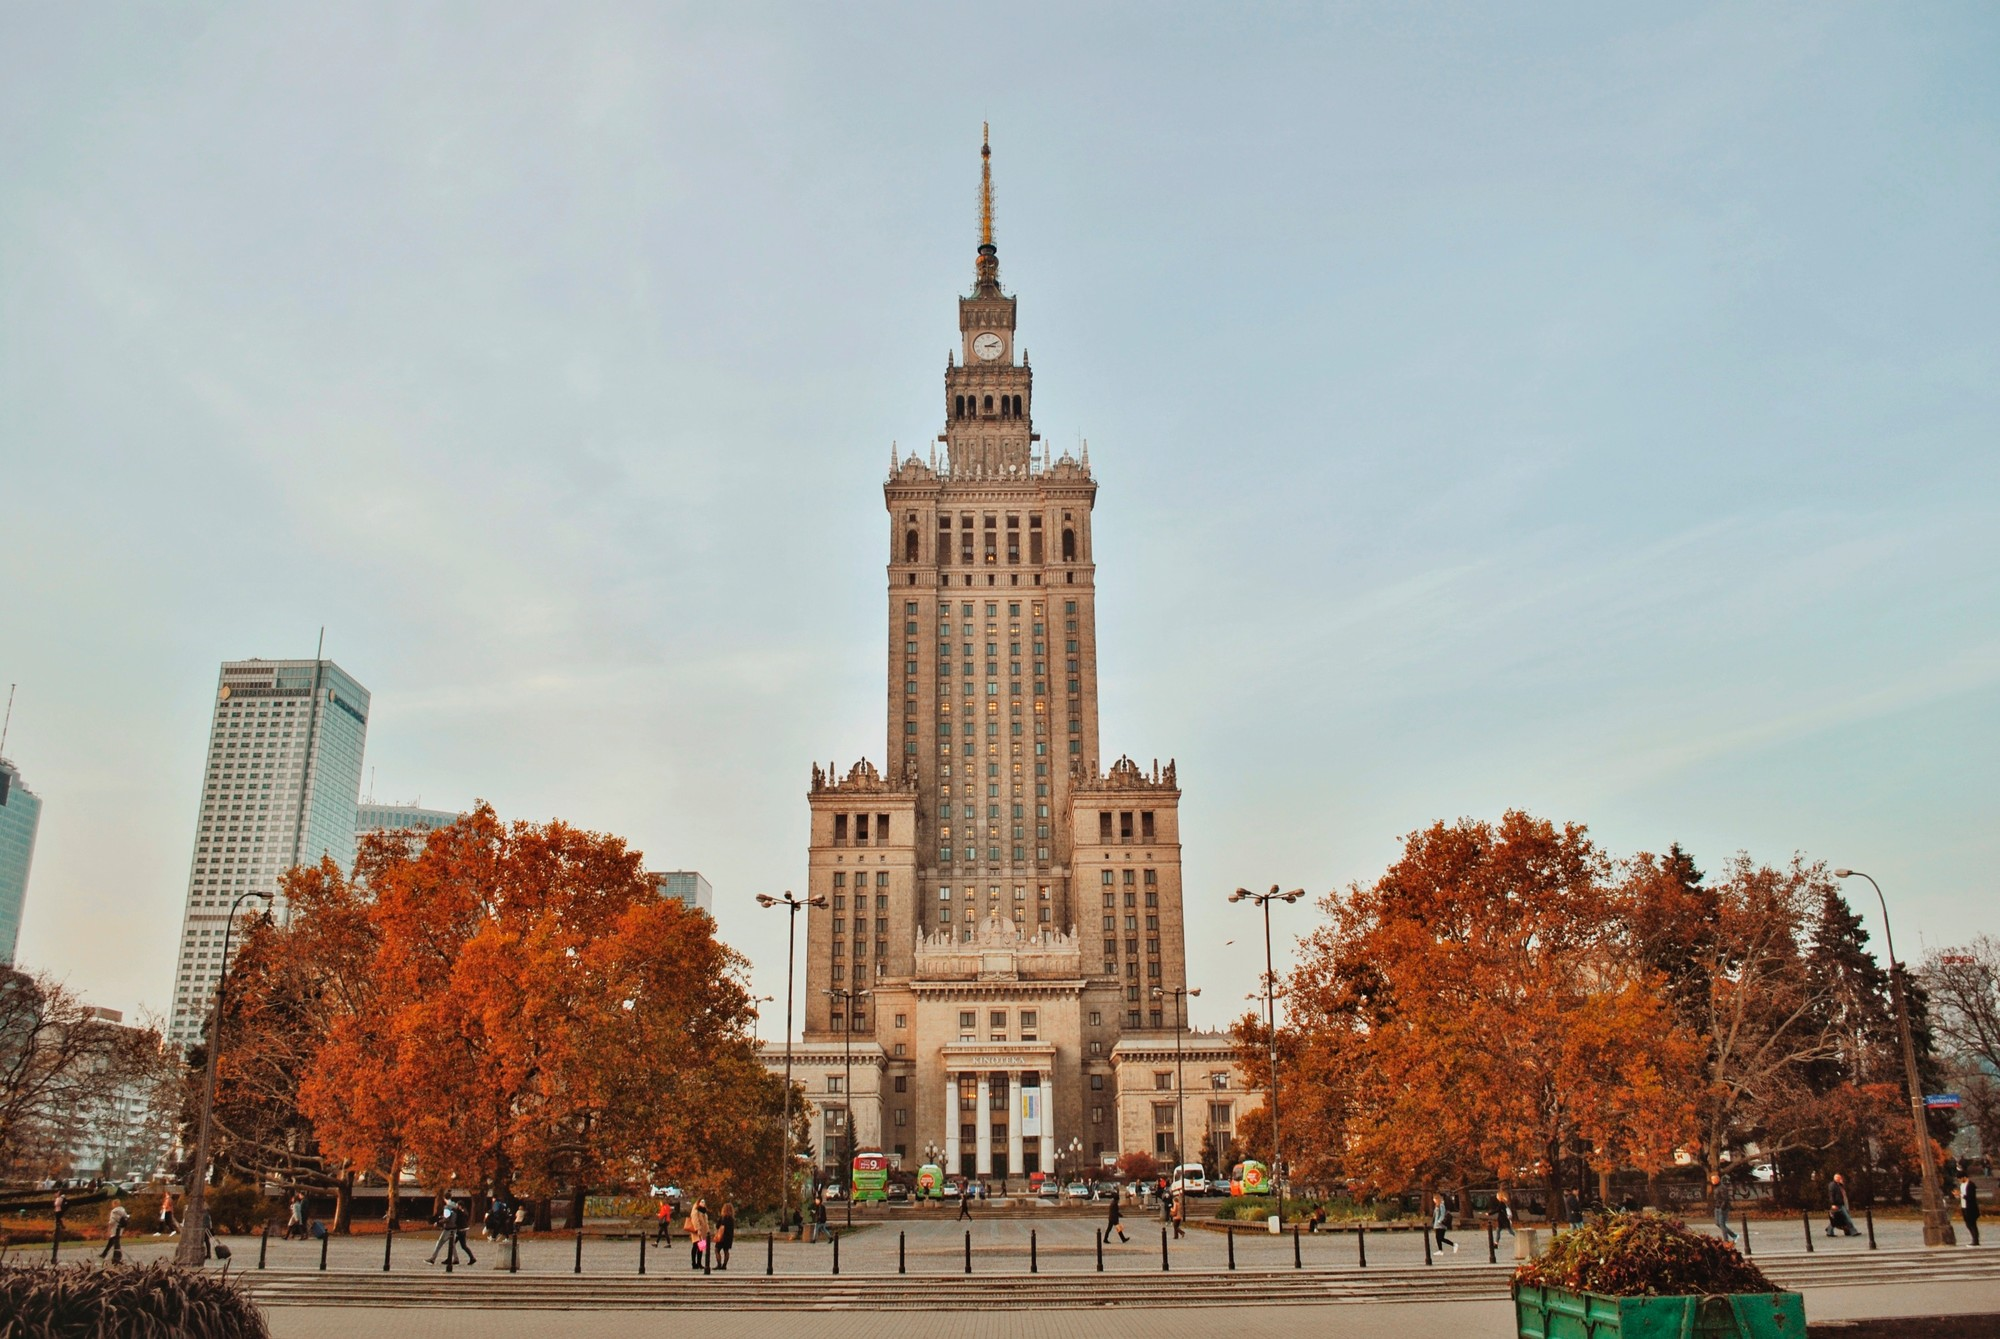 Palace of Culture & Science   Sightseeing   Warsaw